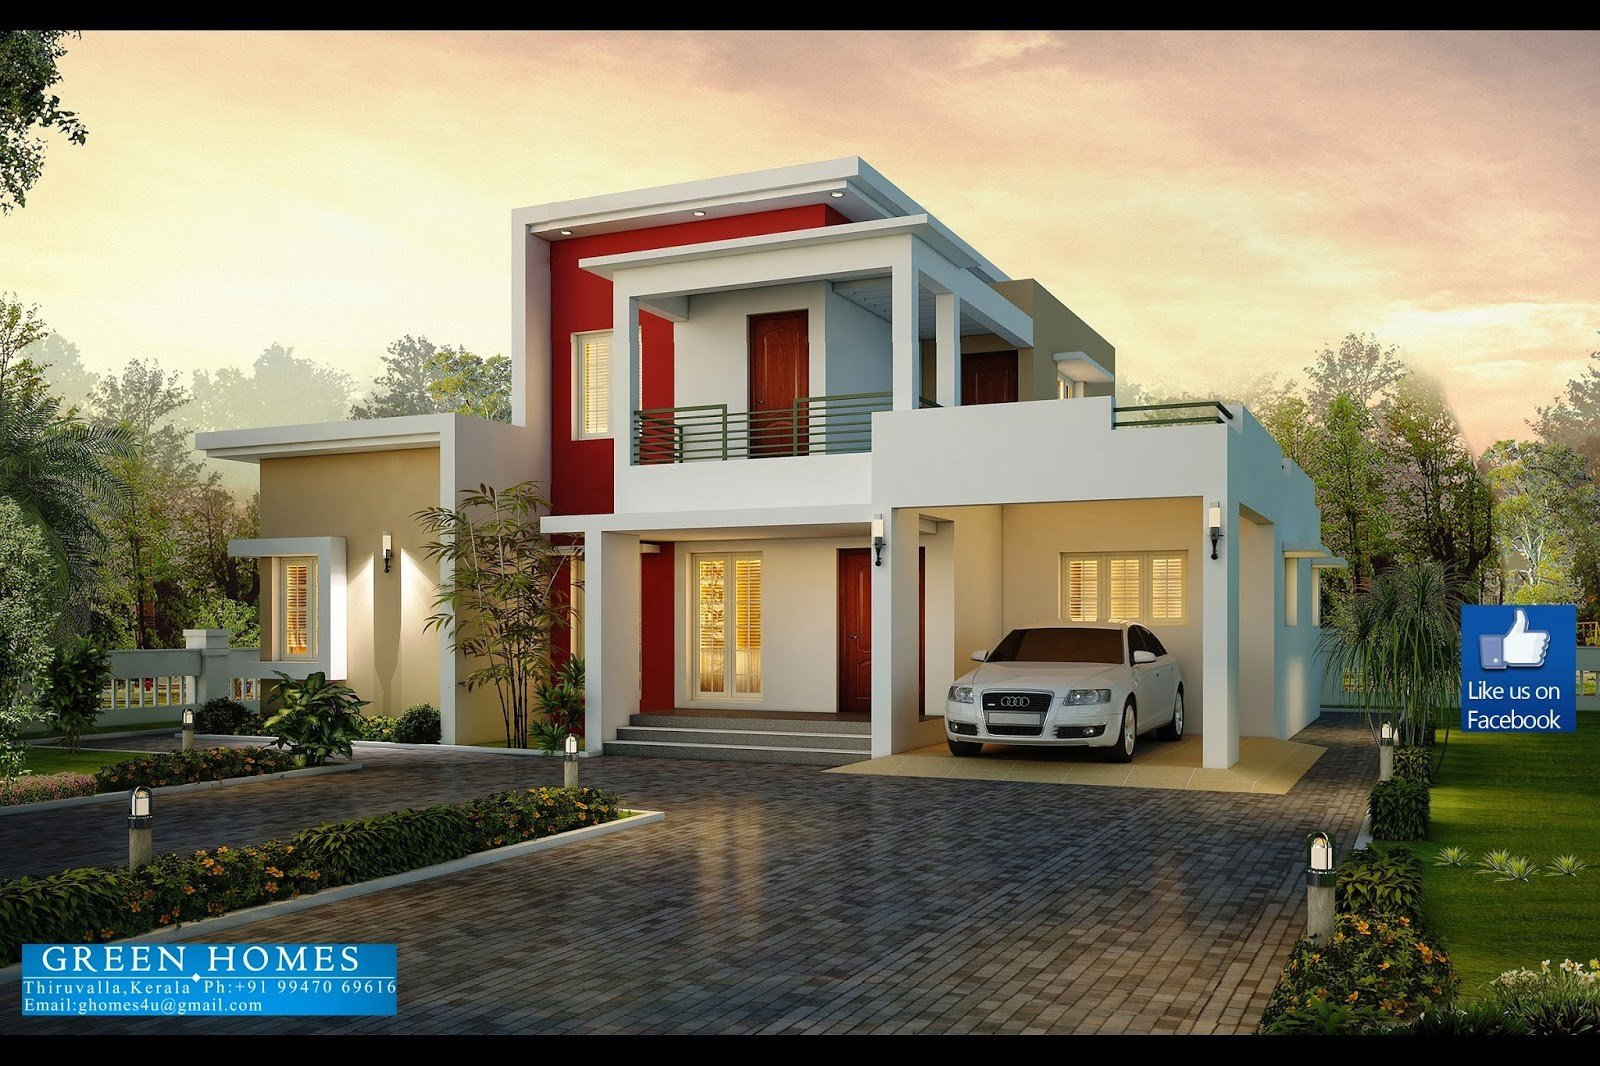 Best 3 Bedroom Section 8 Homes Modern 3 Bedroom House Designs 3 Bedroom Modern House Plans With Pictures